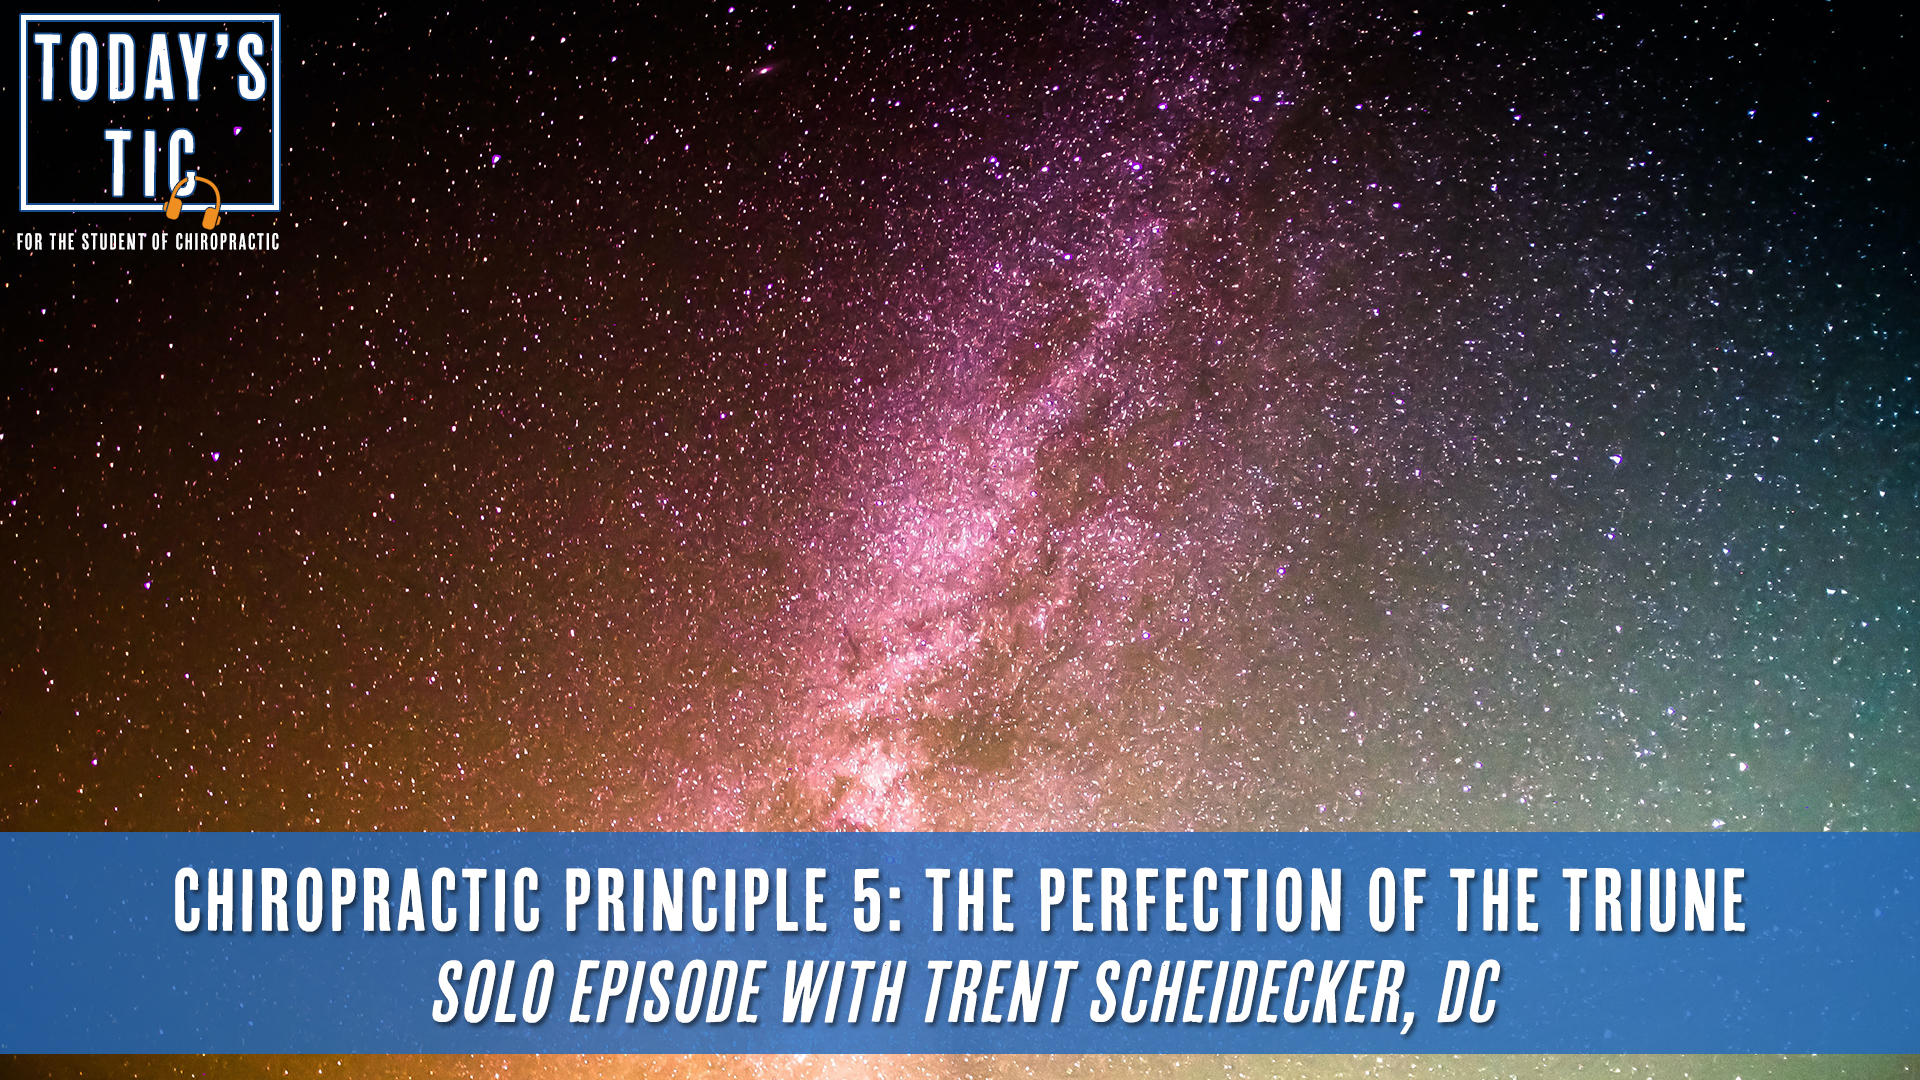 Chiropractic Principle 5 - The Perfection of the Triune